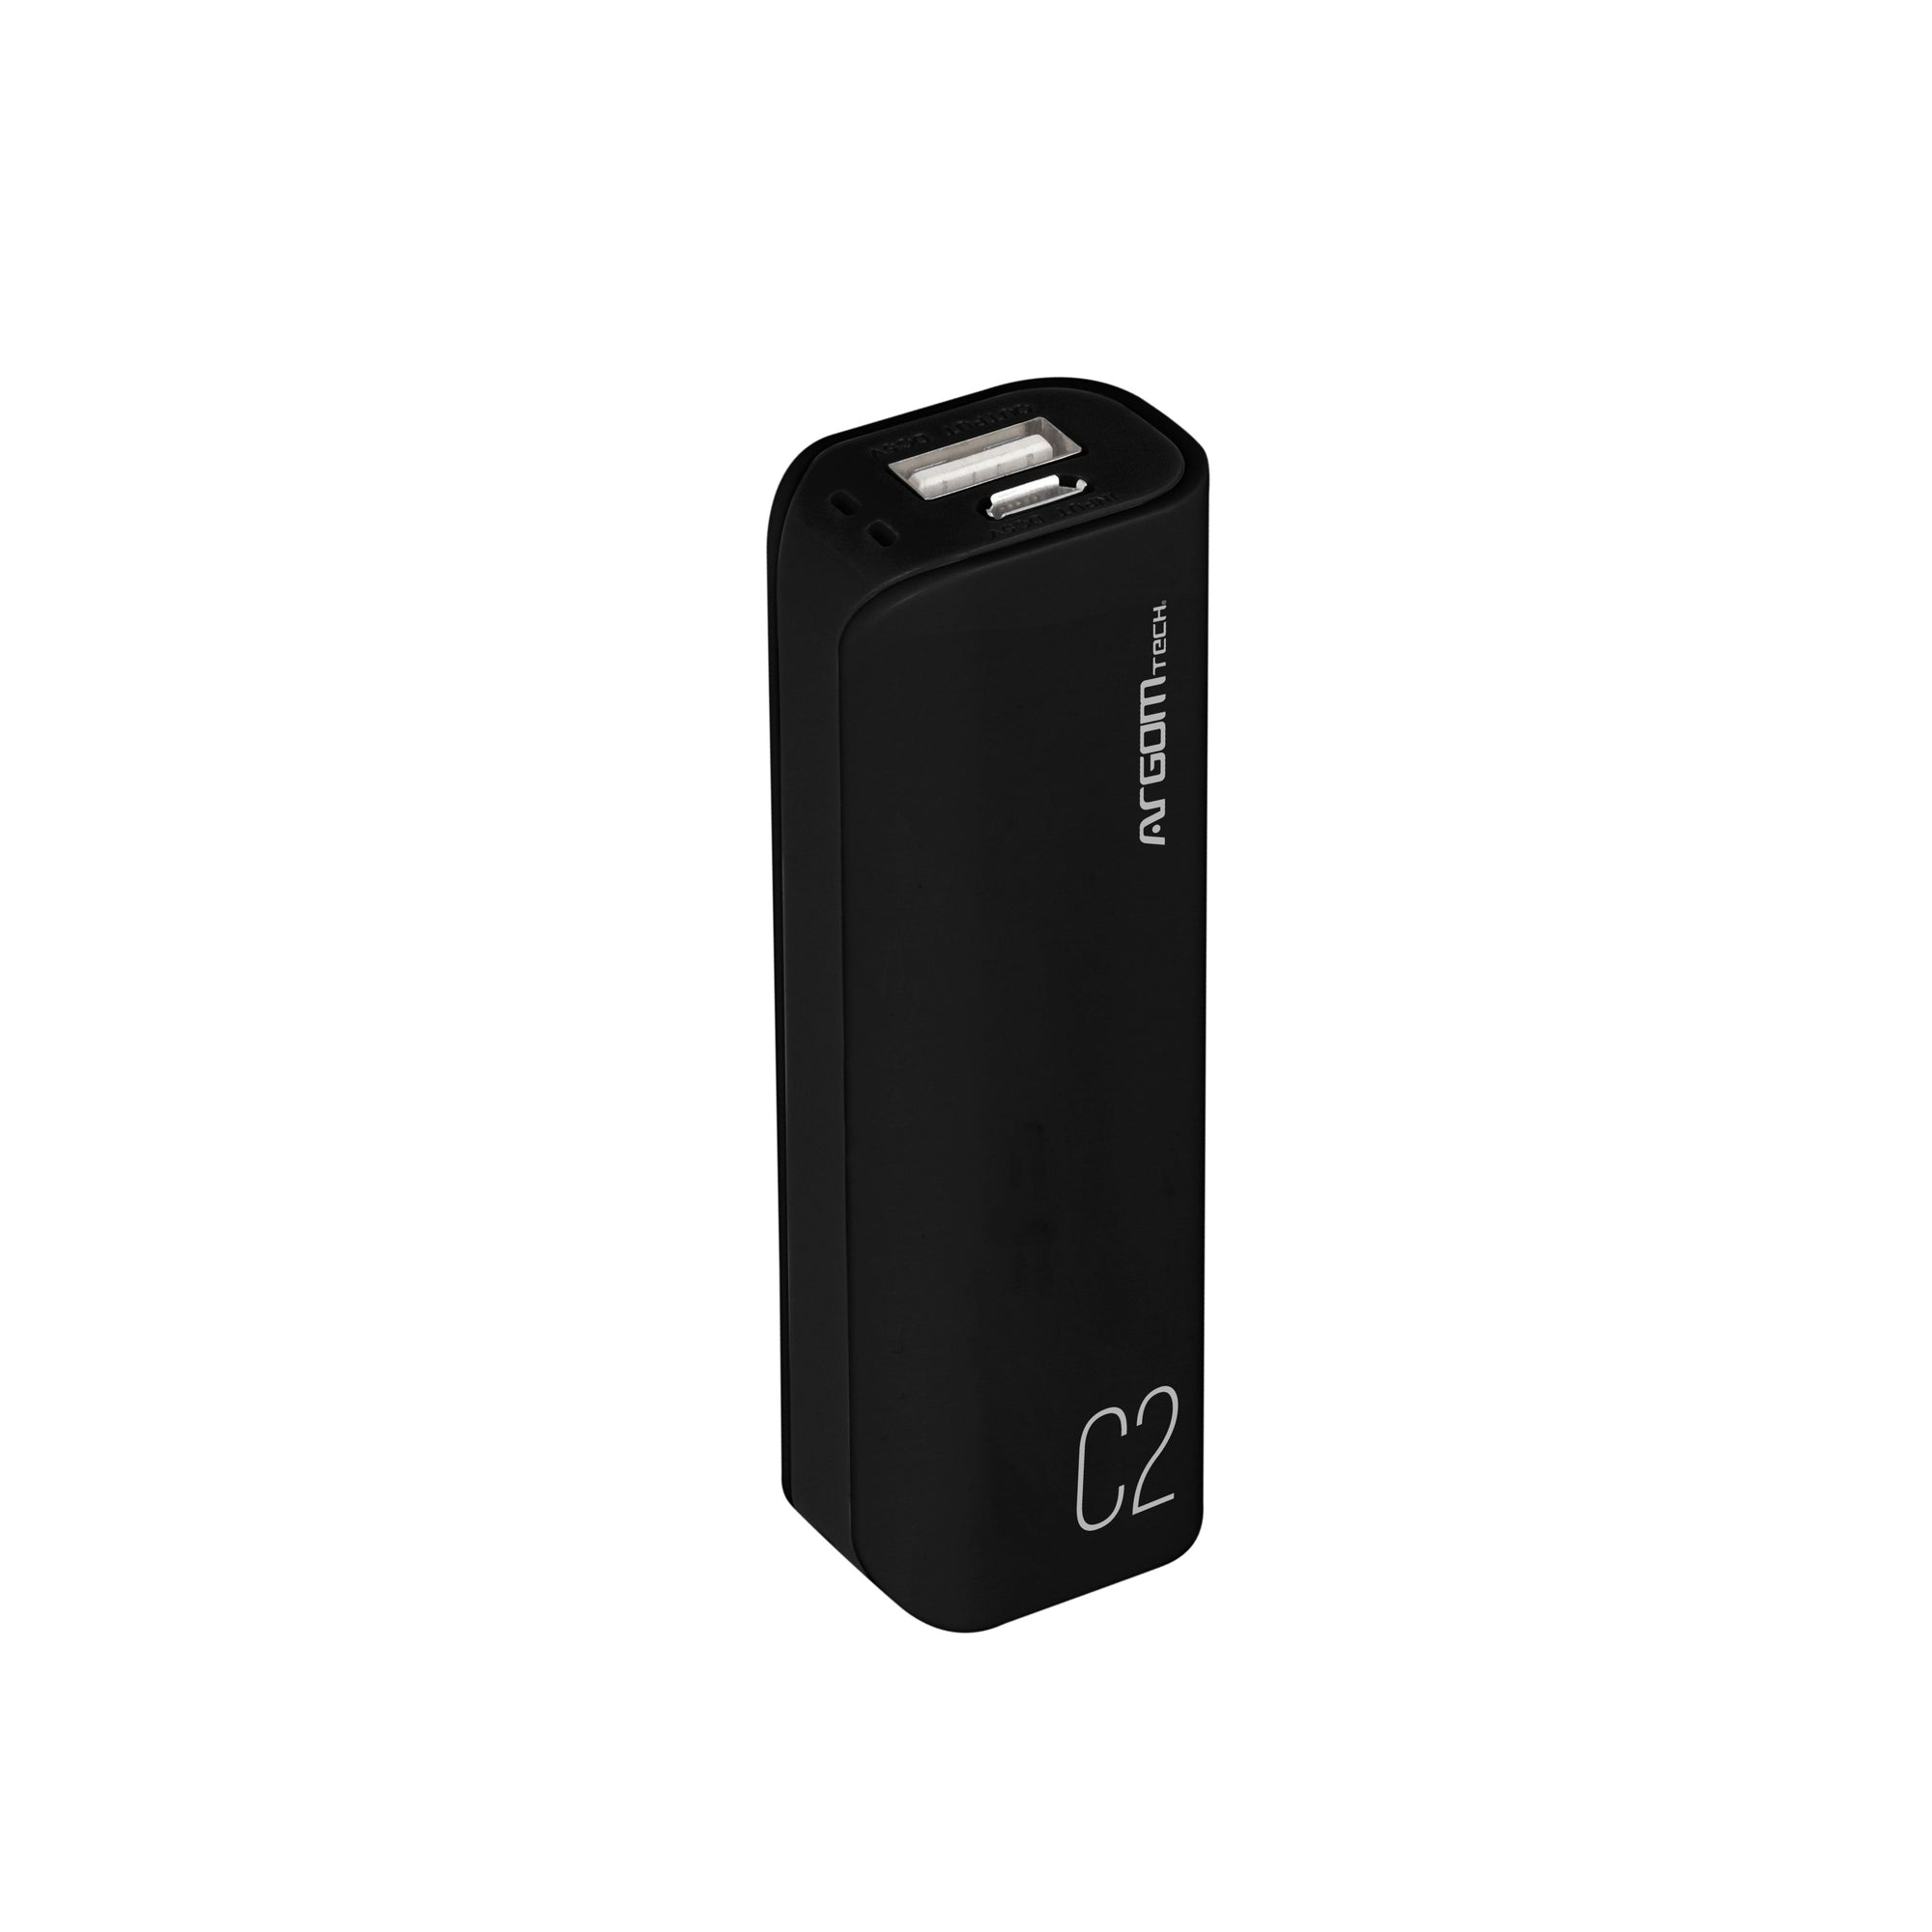 Power Bank C2 2500mAh